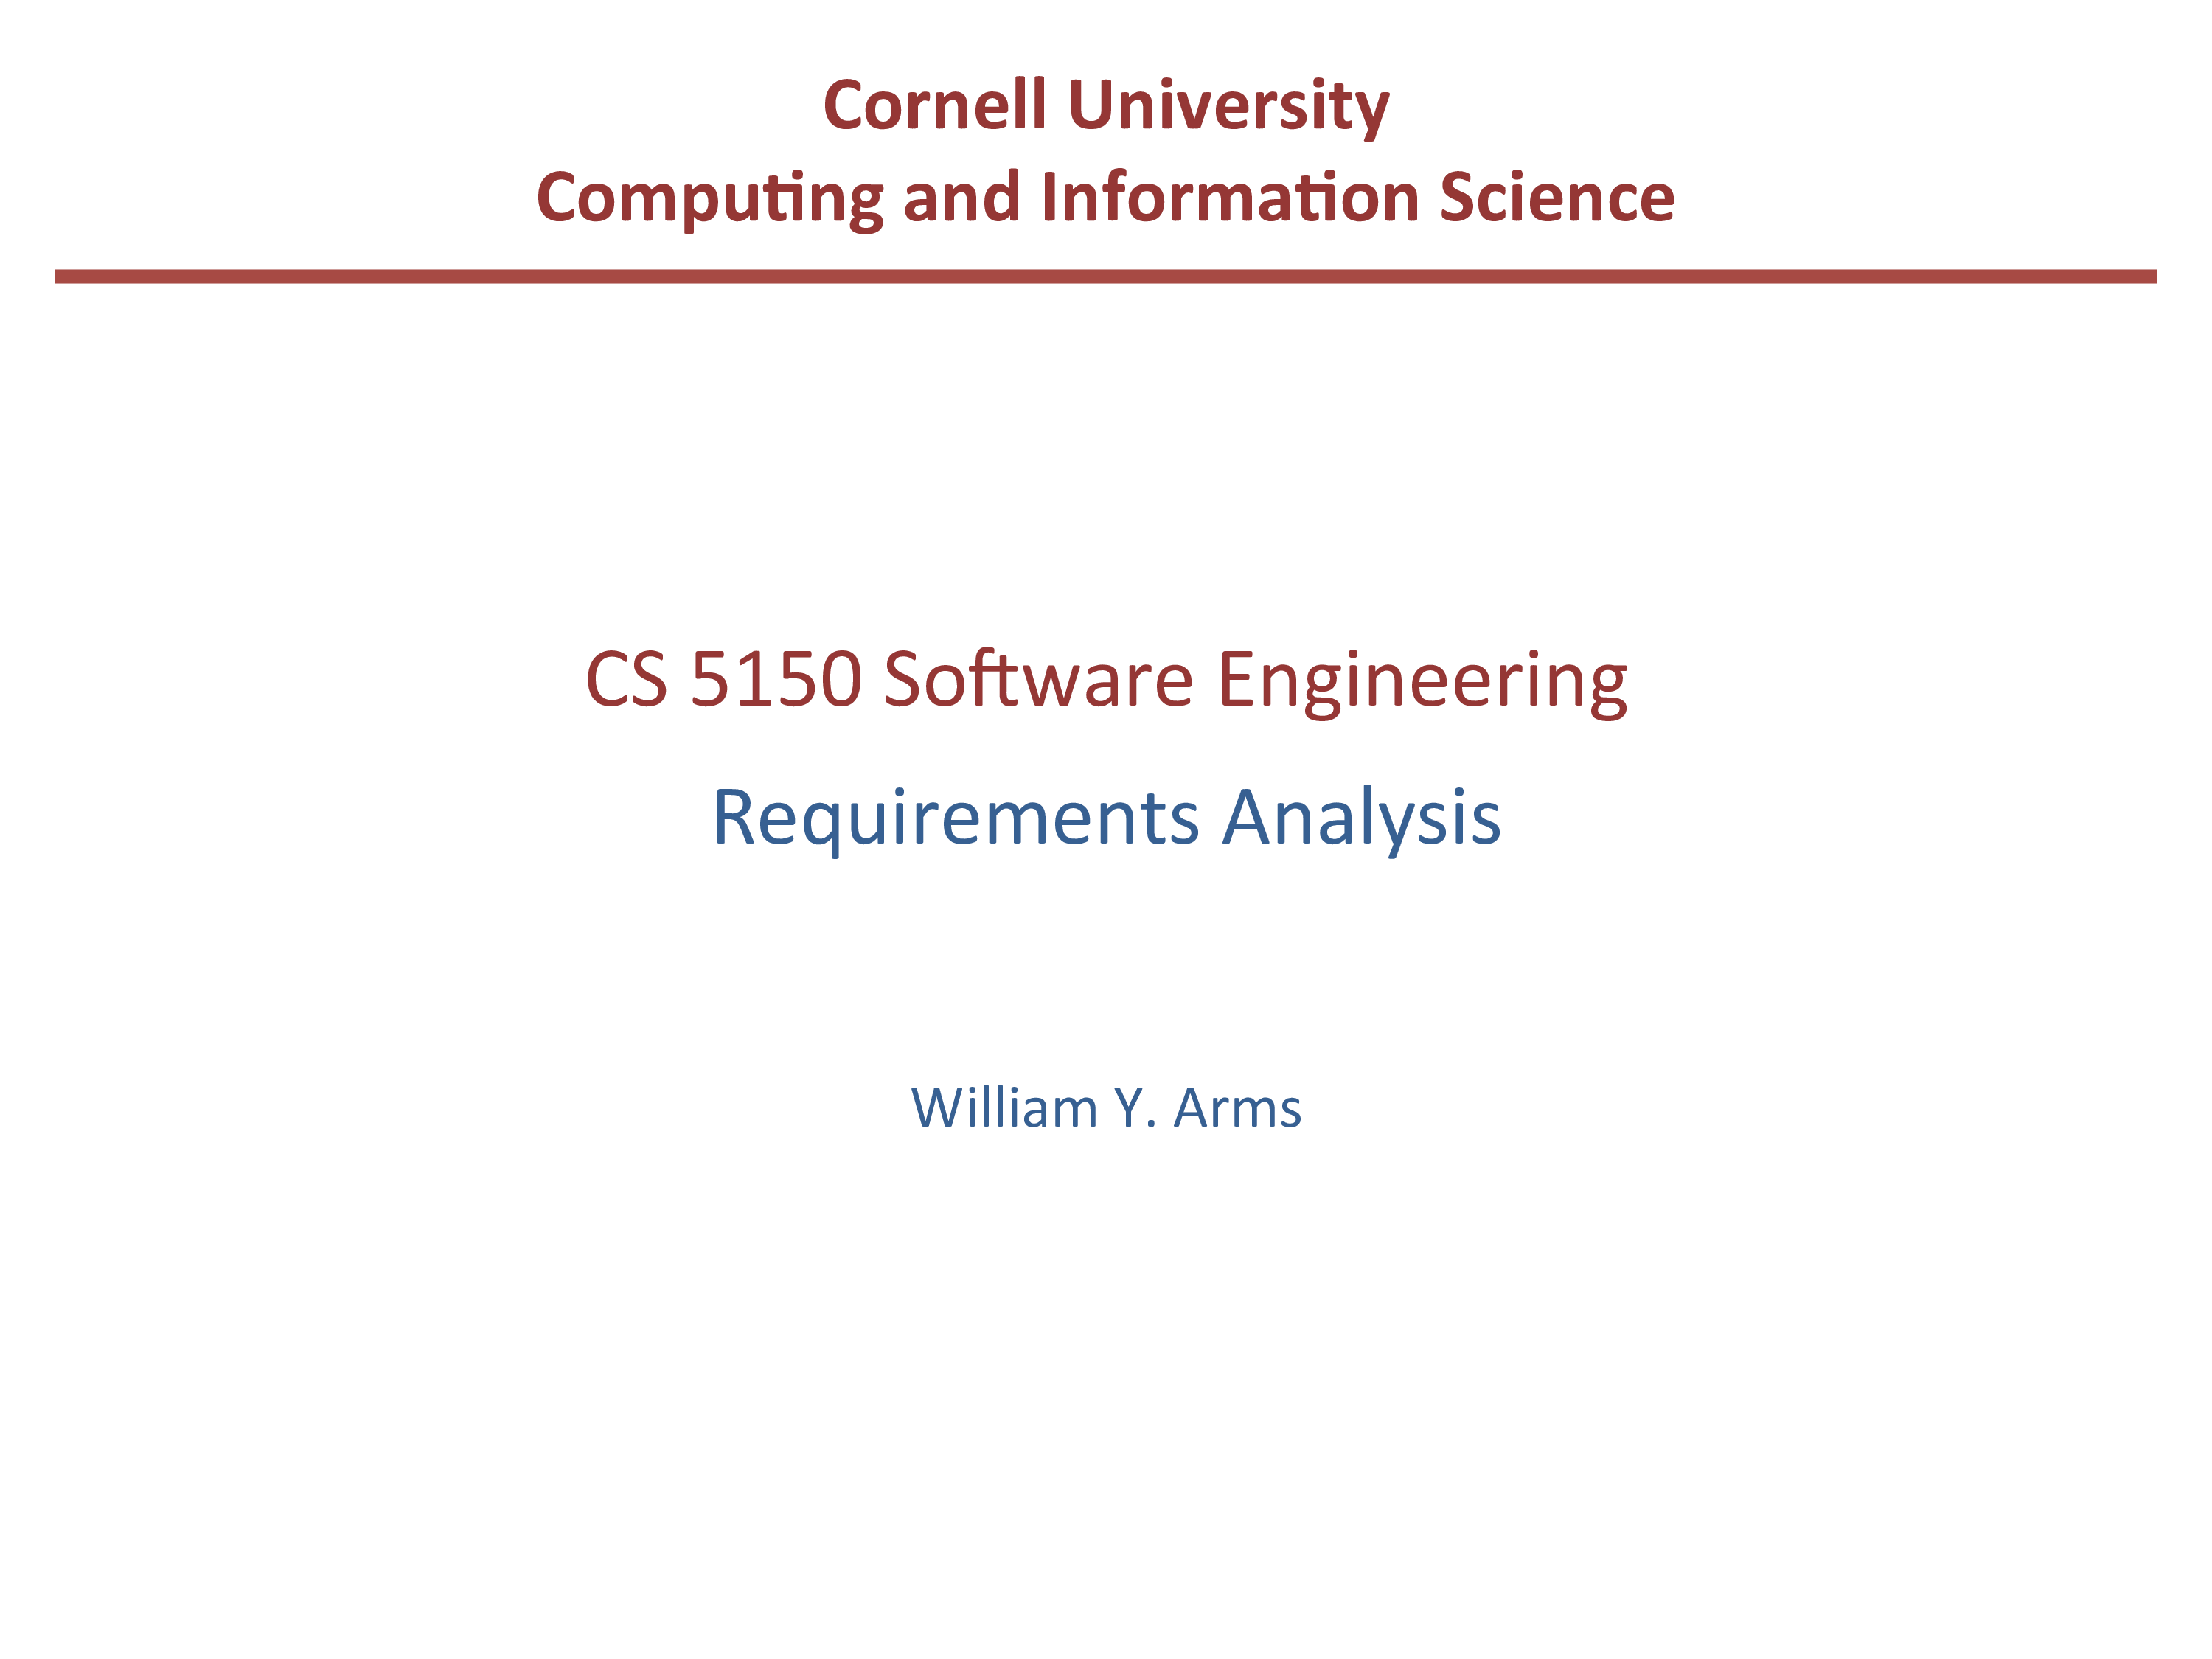 Free Software Engineering Requirements Analysis Templates At